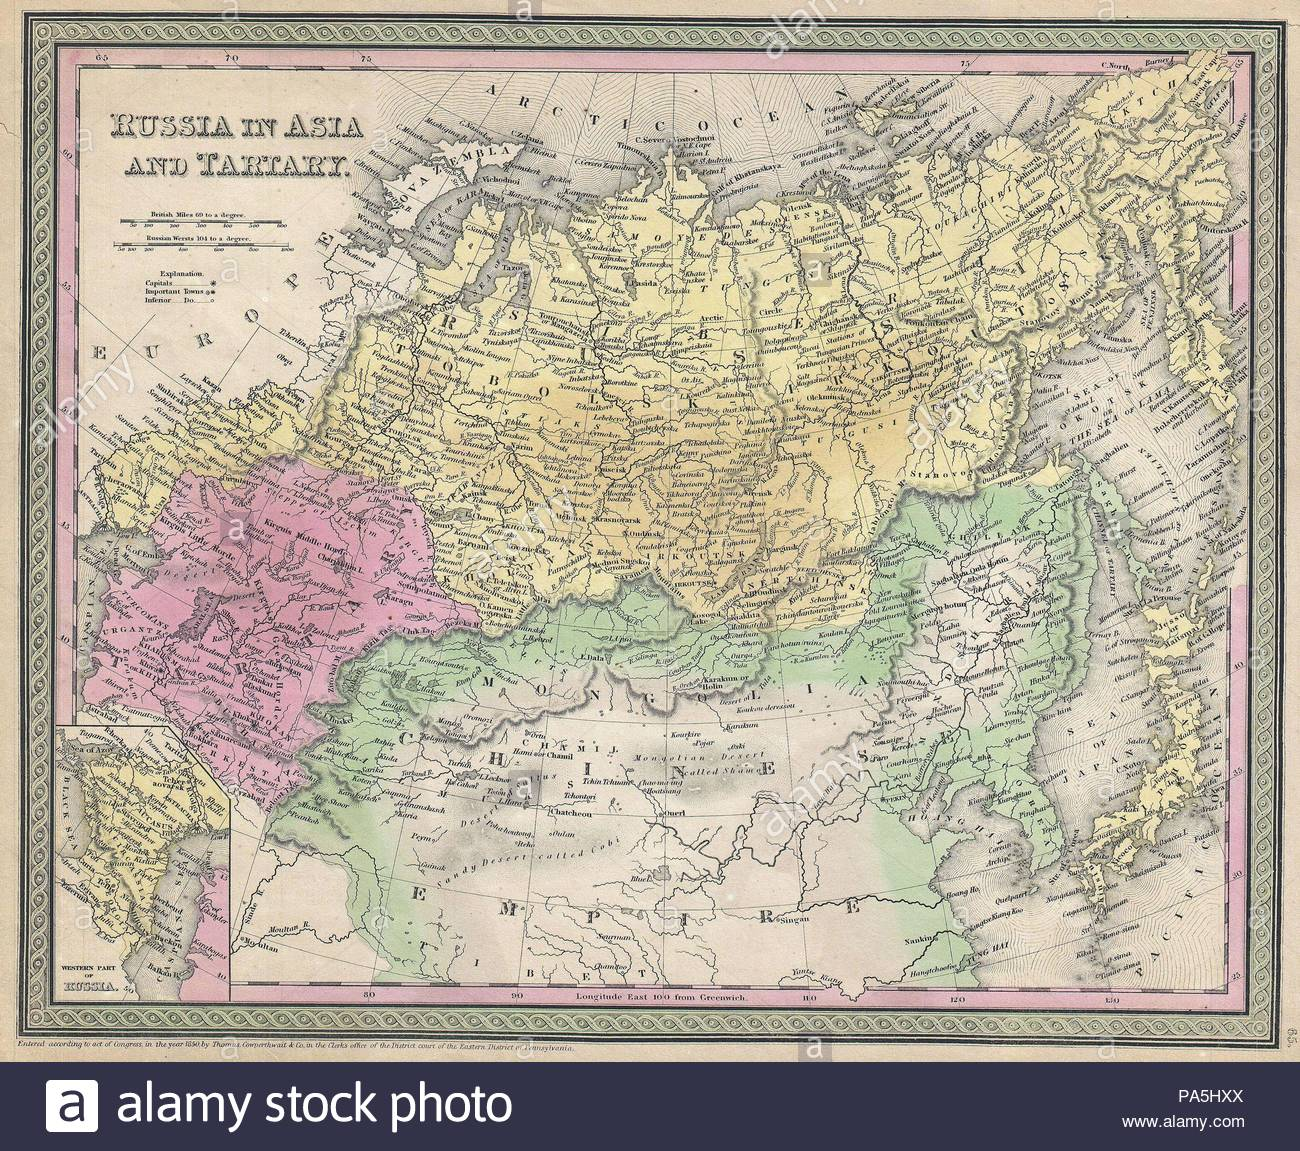 1853, Mitchell Map of Russia in Asia and Tartary.